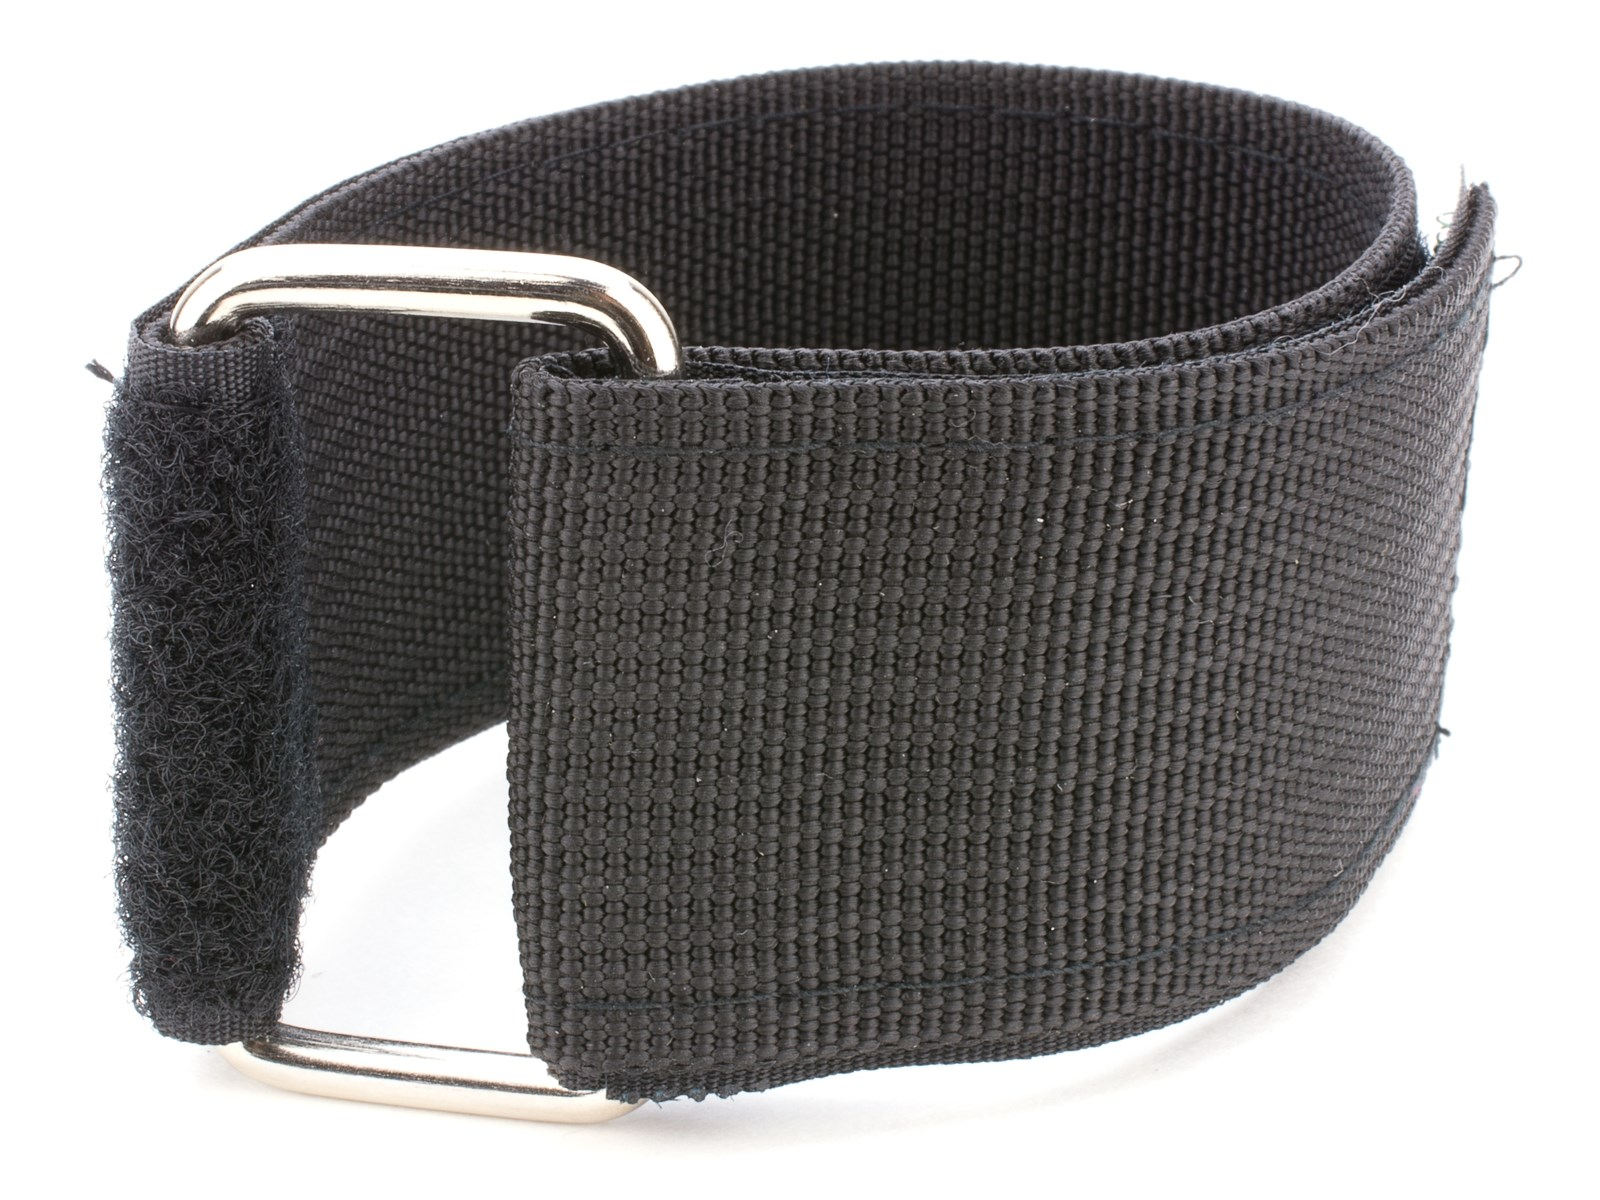 Black Hook and Loop Heavy Duty Strap Strapping Cable Ties with Metal Buckle